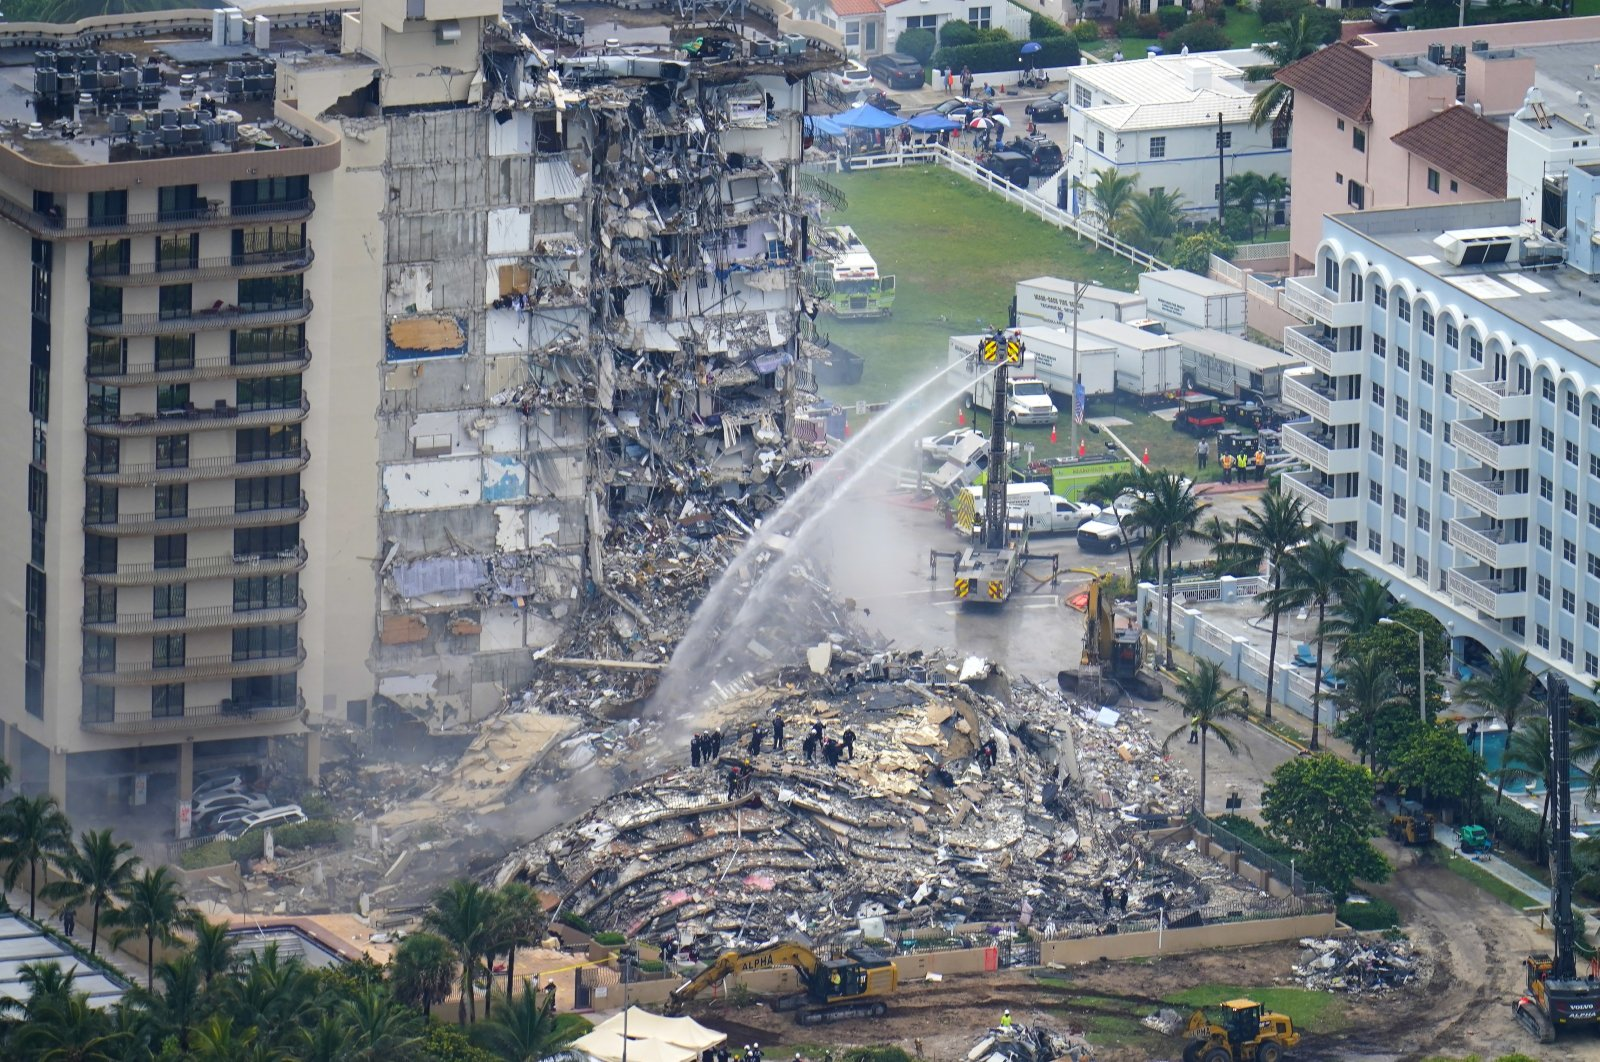 Rescue personnel work at the remains of the Champlain Towers South Condo in Surfside, Florida, U.S., June 25, 2021. (AP Photo)